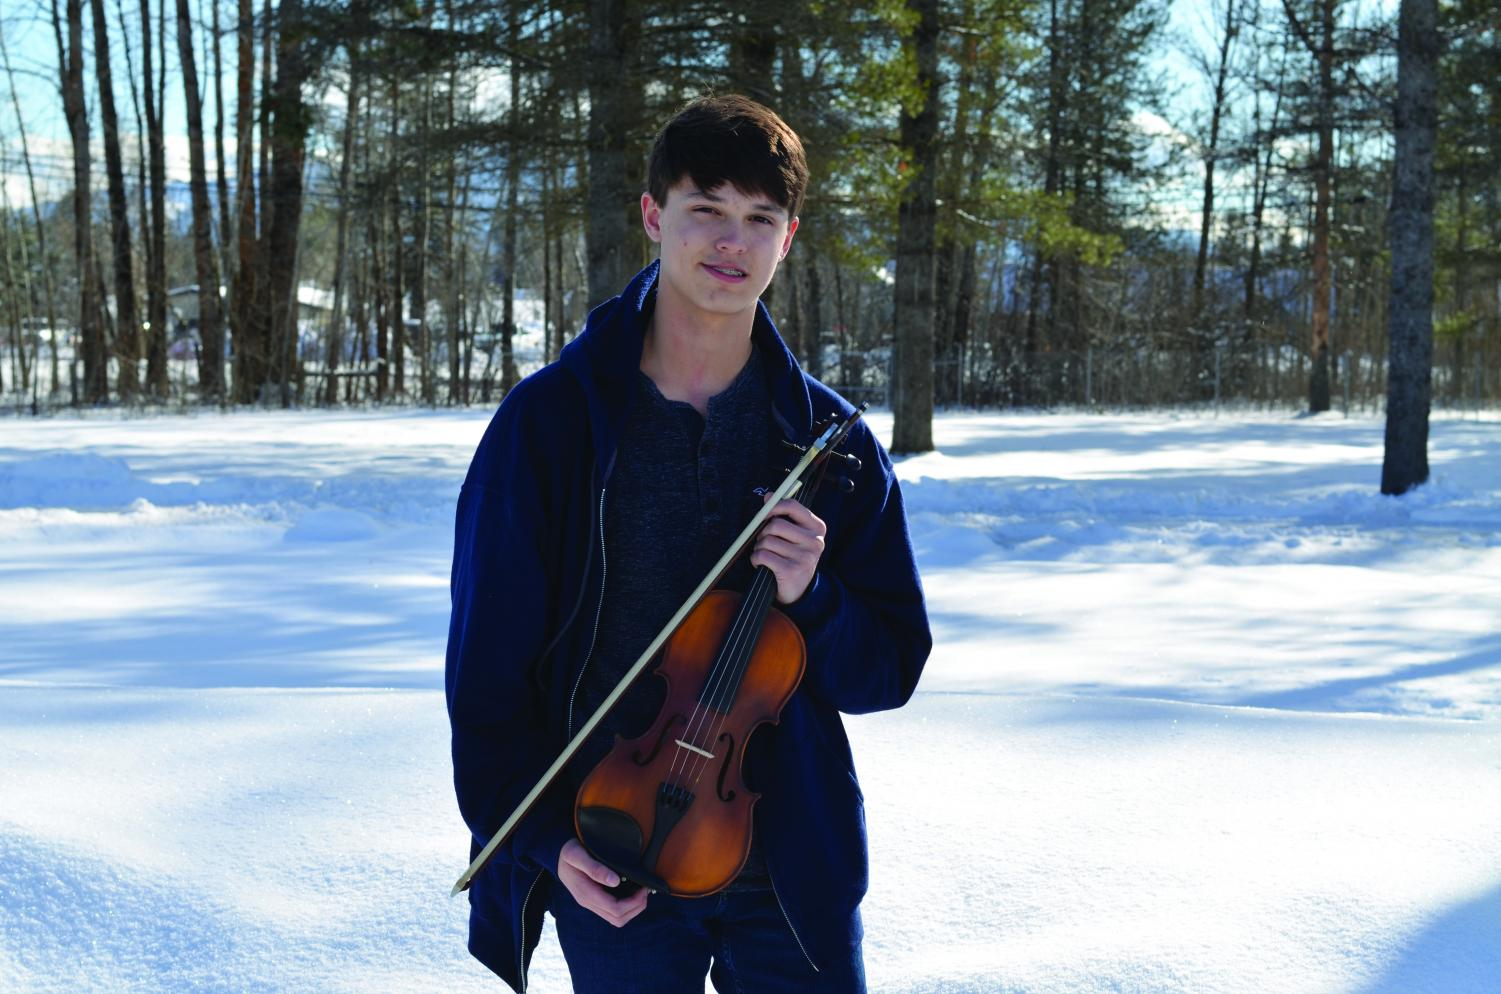 Max Reed poses along side his violin and bow.